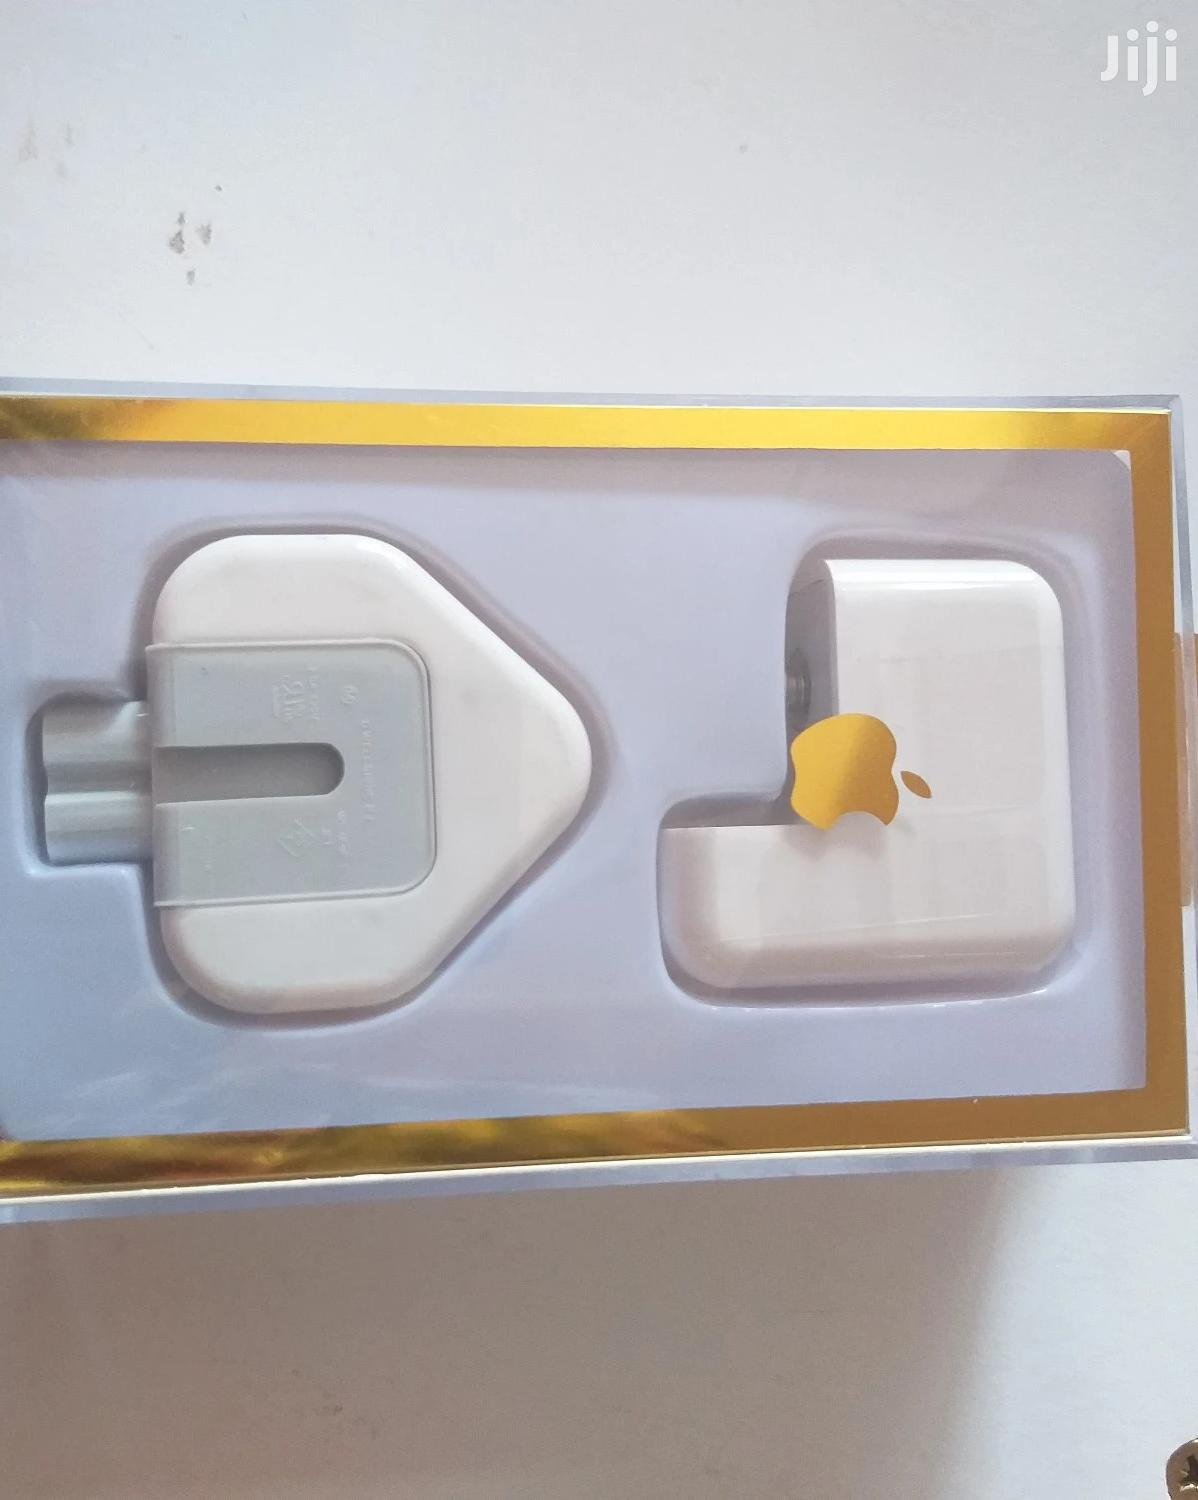 Original iPhone Charger | Accessories for Mobile Phones & Tablets for sale in Kampala, Central Region, Uganda